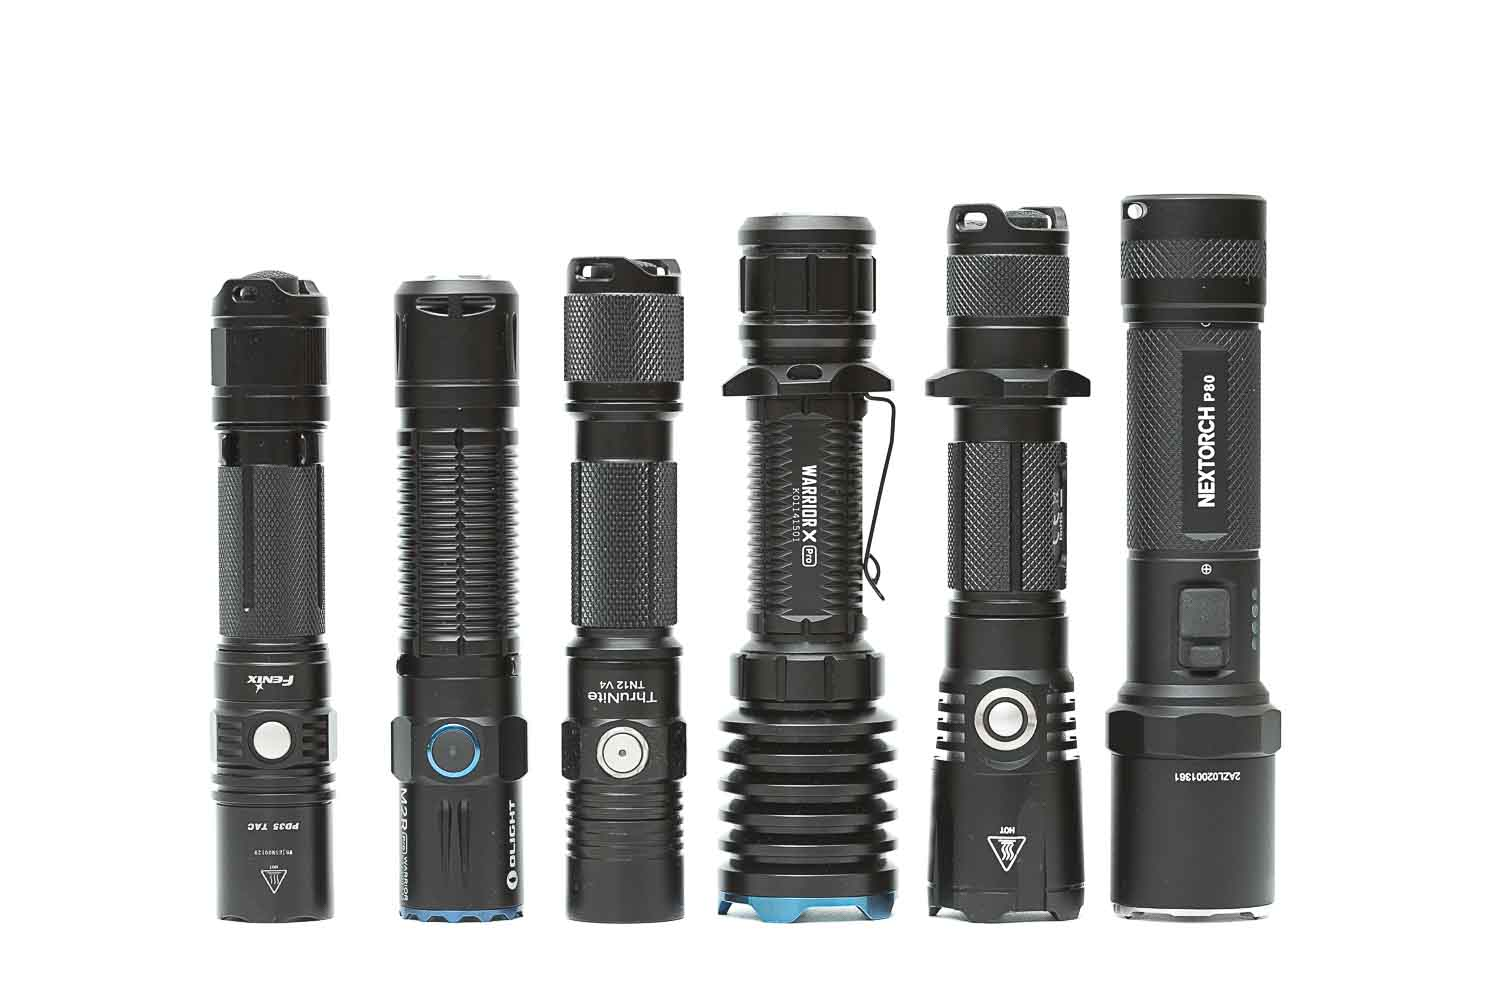 Nextorch P80 compared to other flashlights